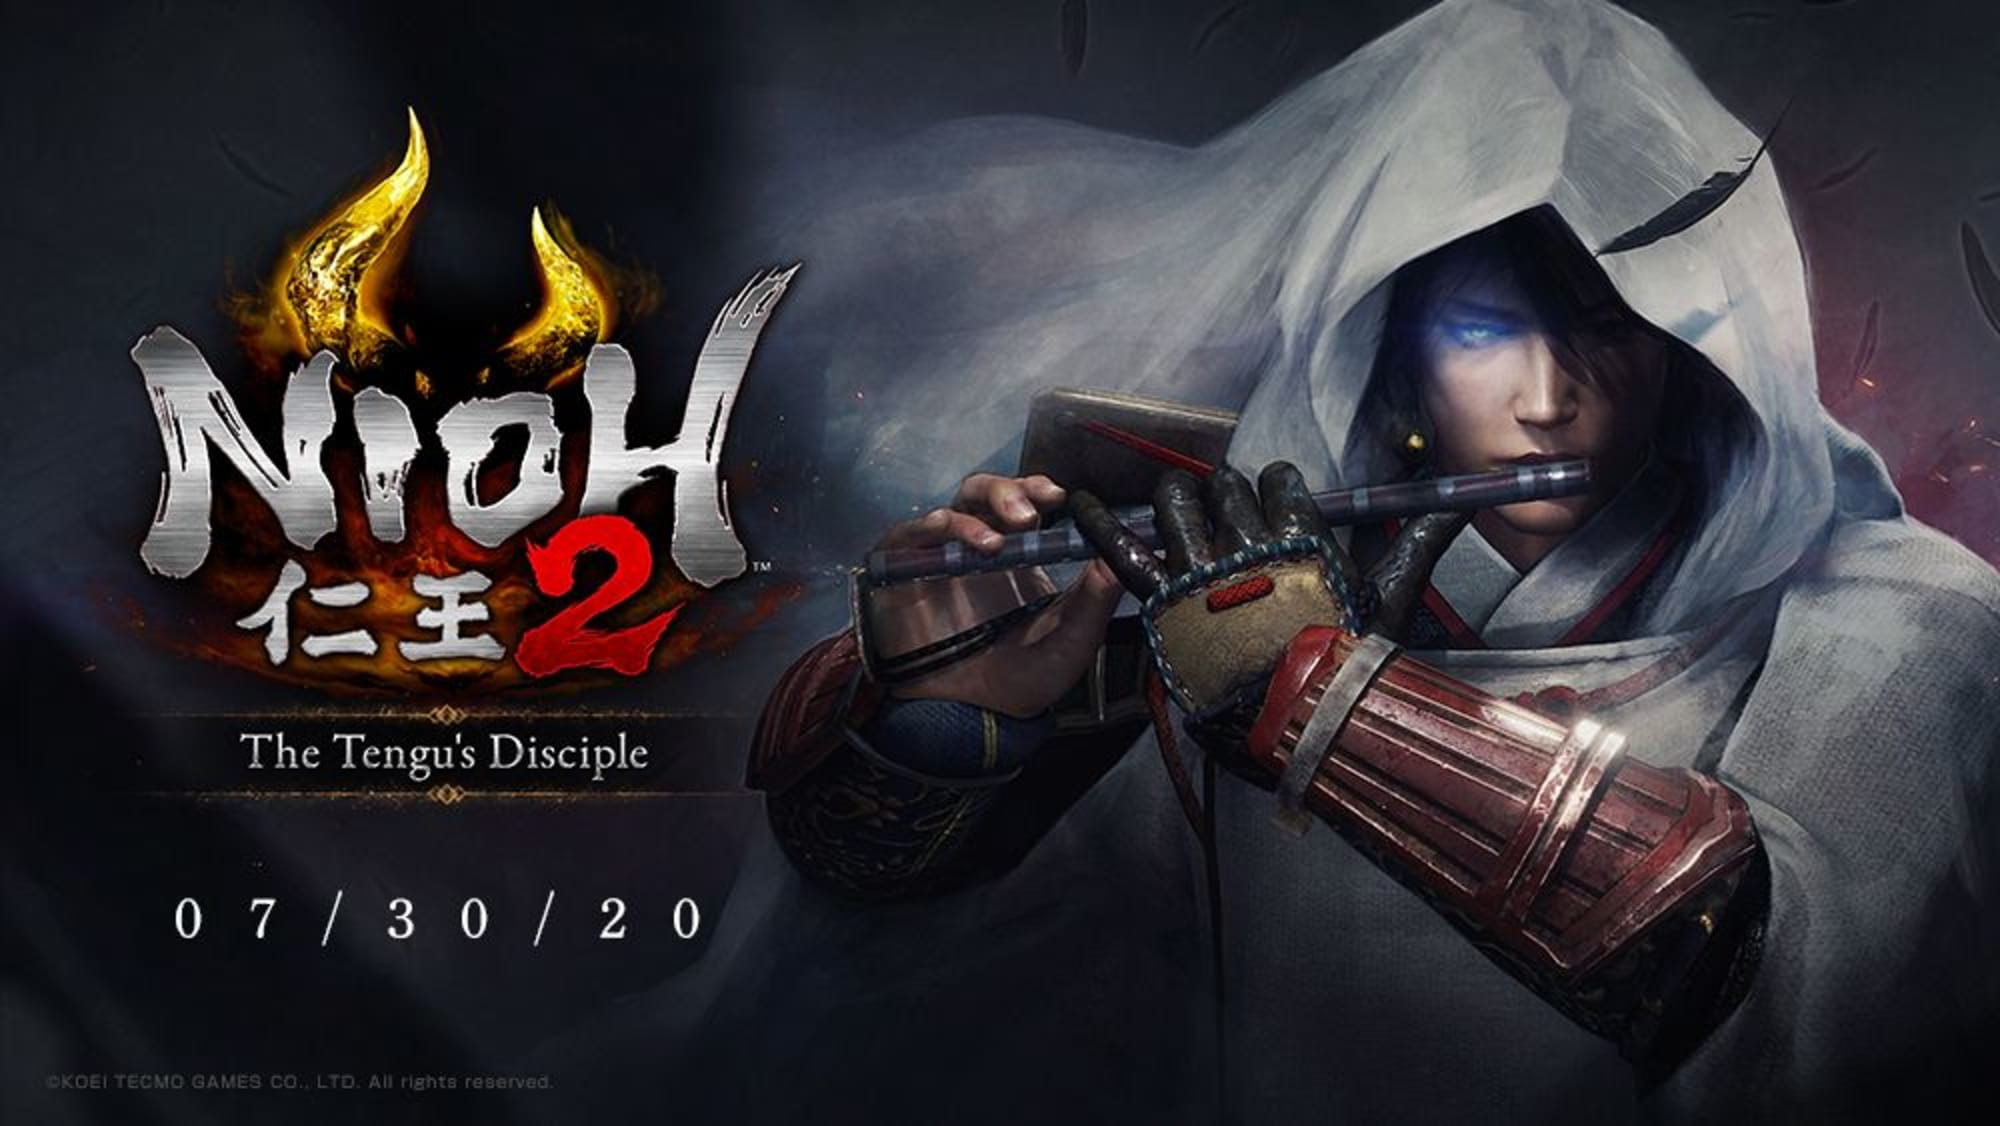 Nioh 2: How to prepare for The Tengu's Disciple expansion